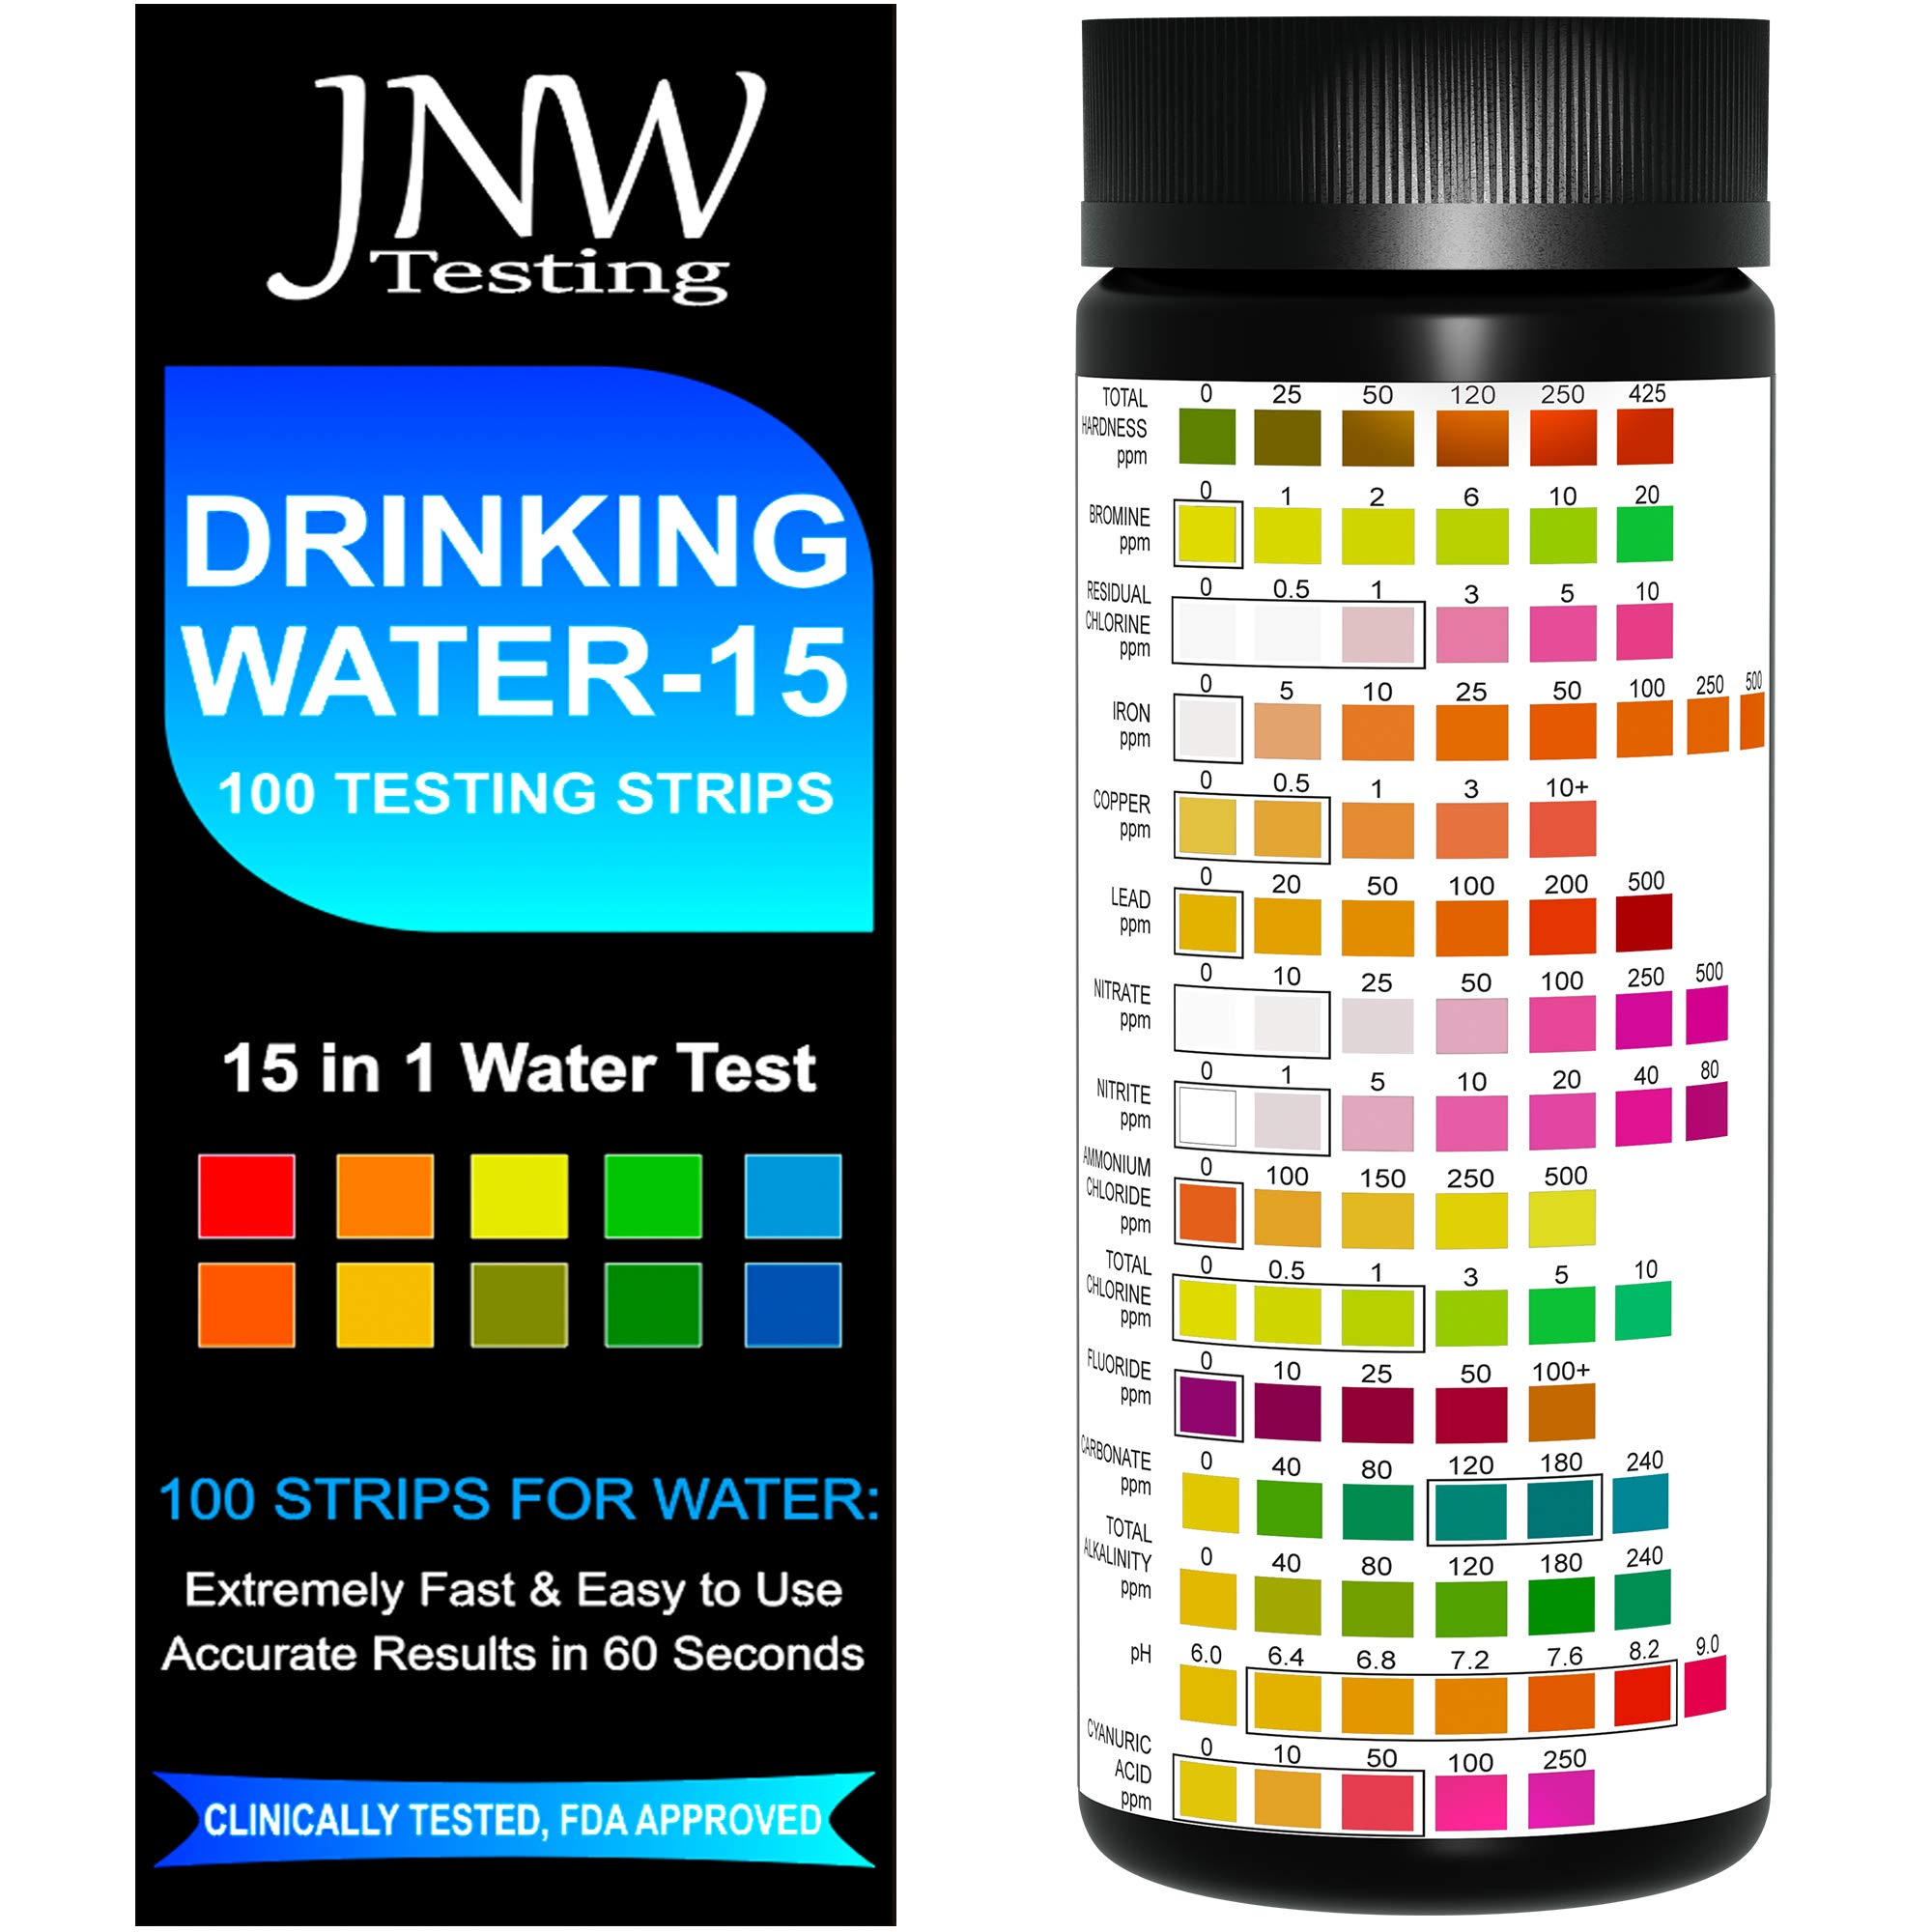 JNW Direct Drinking Water Test Strips 15 in 1, Best Water Tester Kit for Fast, Easy & Accurate Water Quality Testing at Home, 100 Count, Free App & Ebook Included